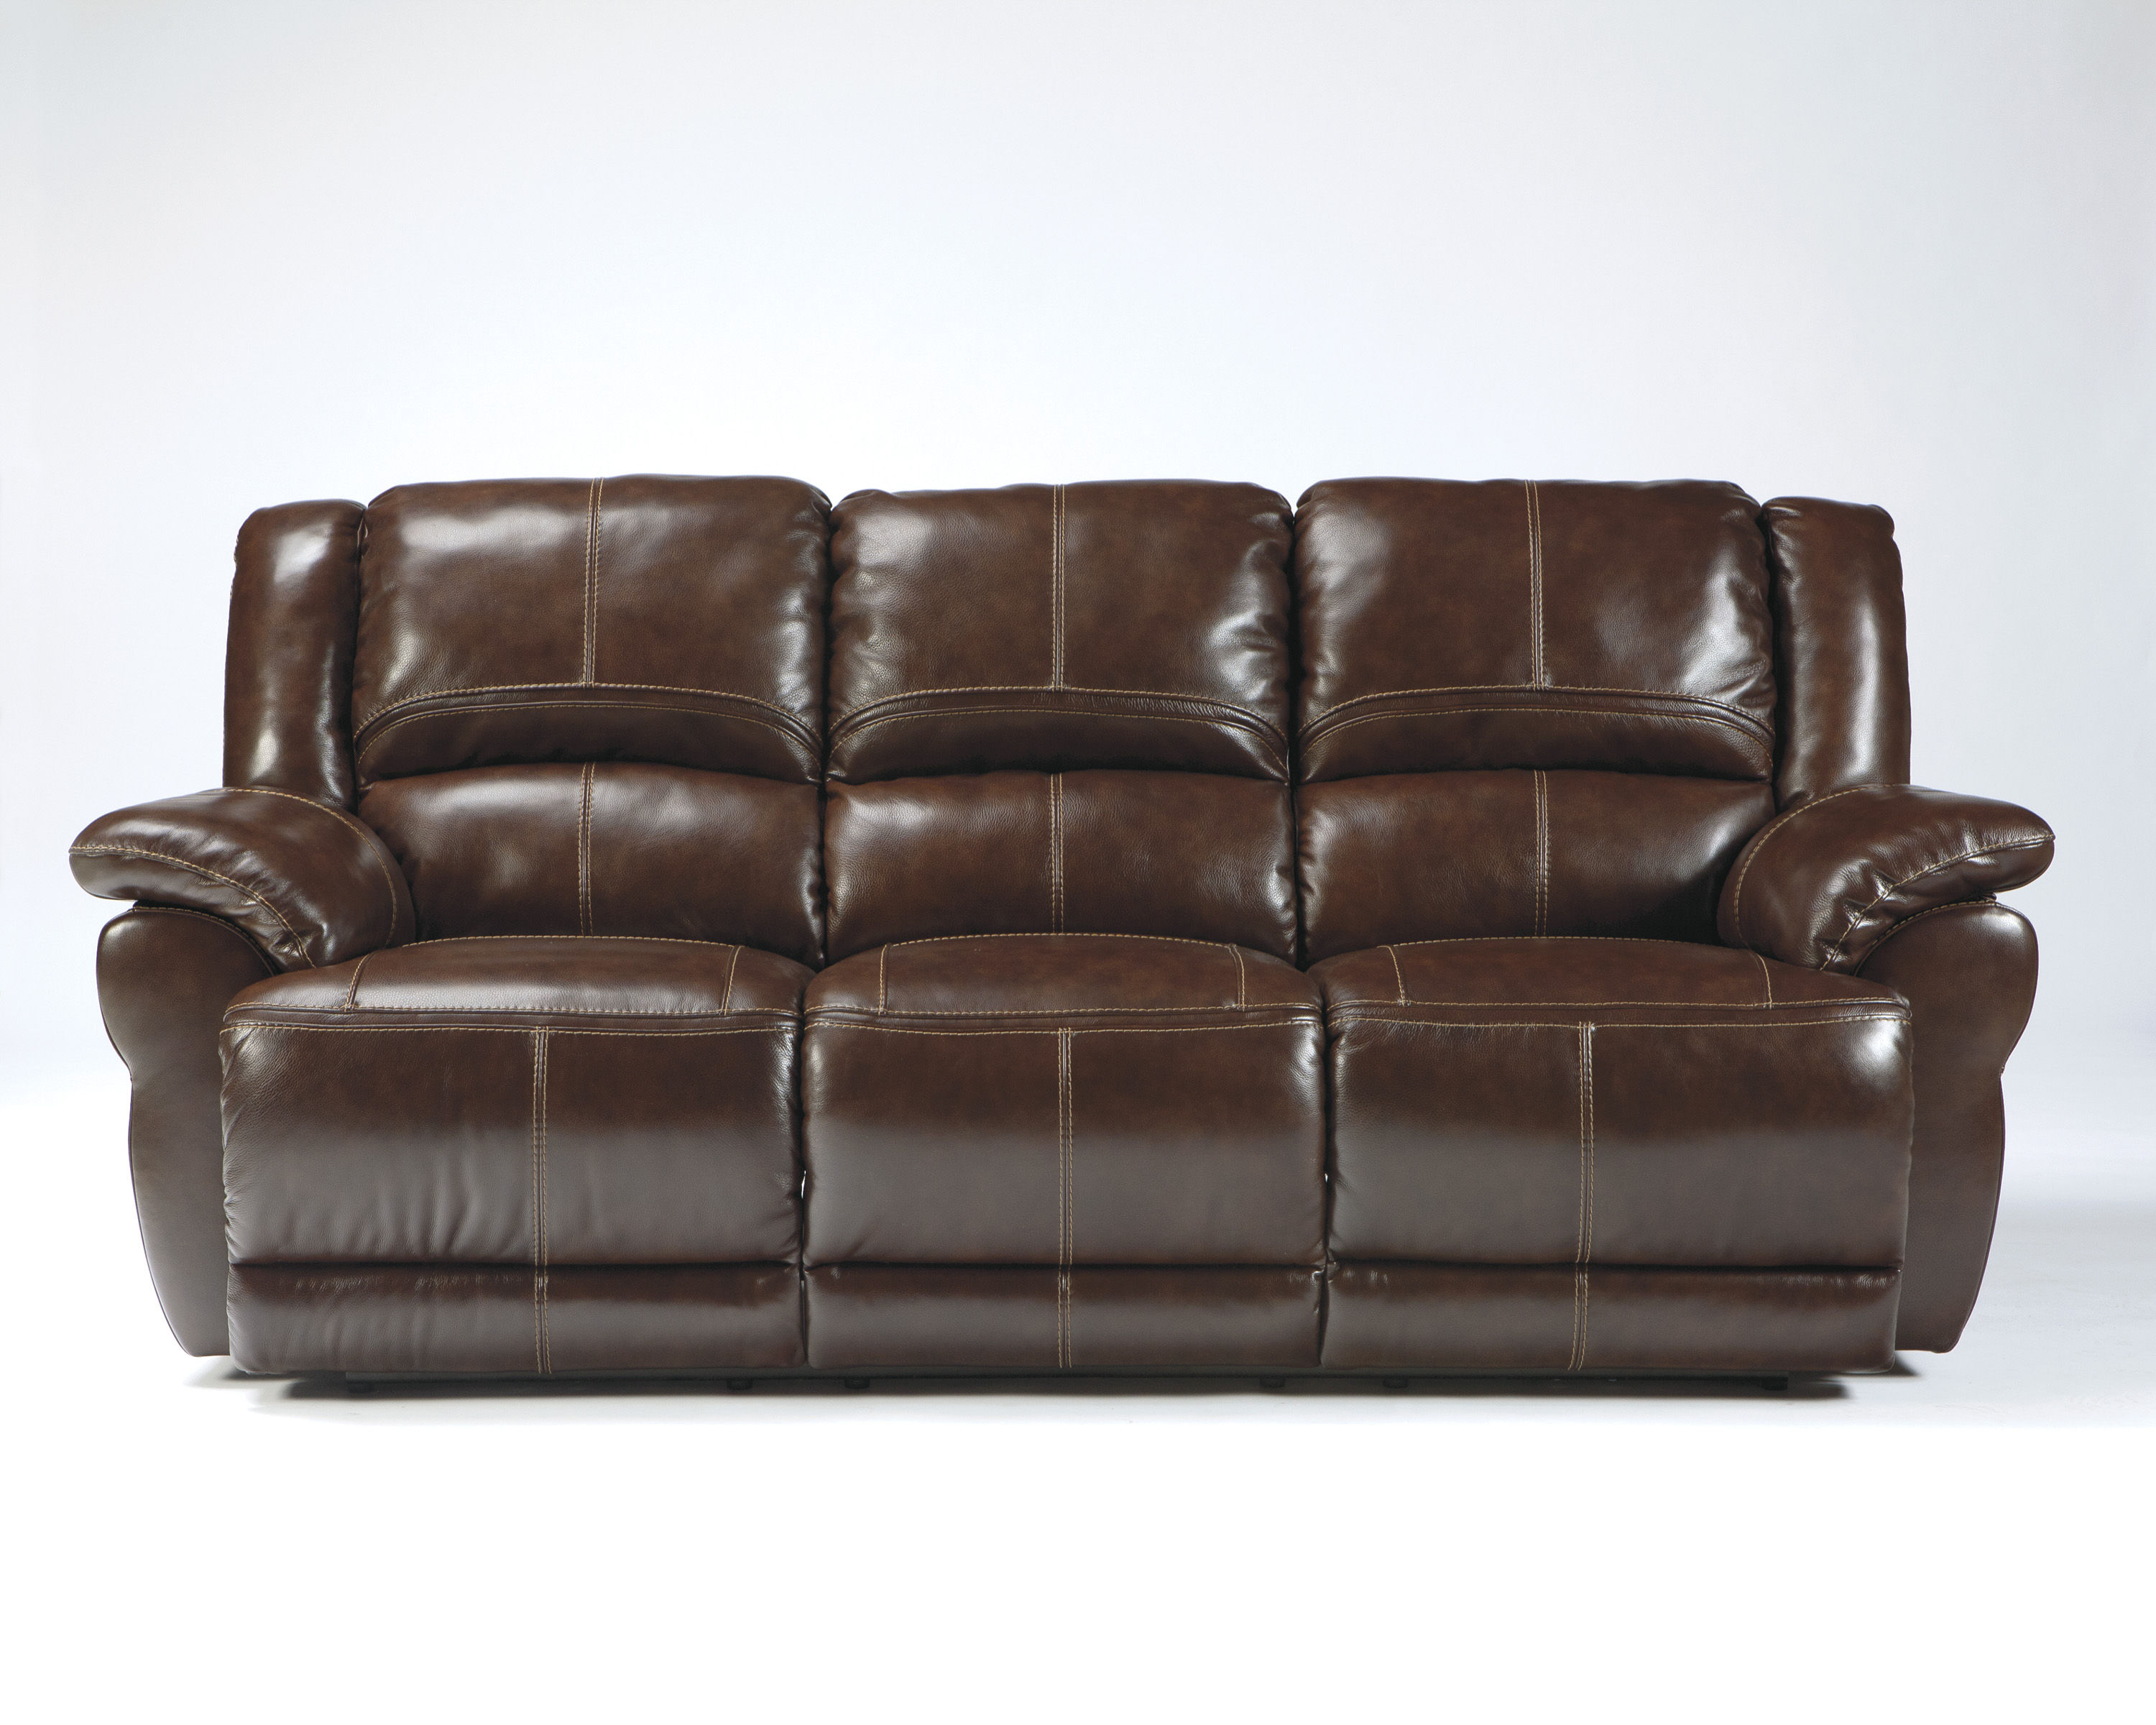 Lenoris Coffee Leather Reclining Power Sofa The Classy Home ~ Leather Sofa And Recliner